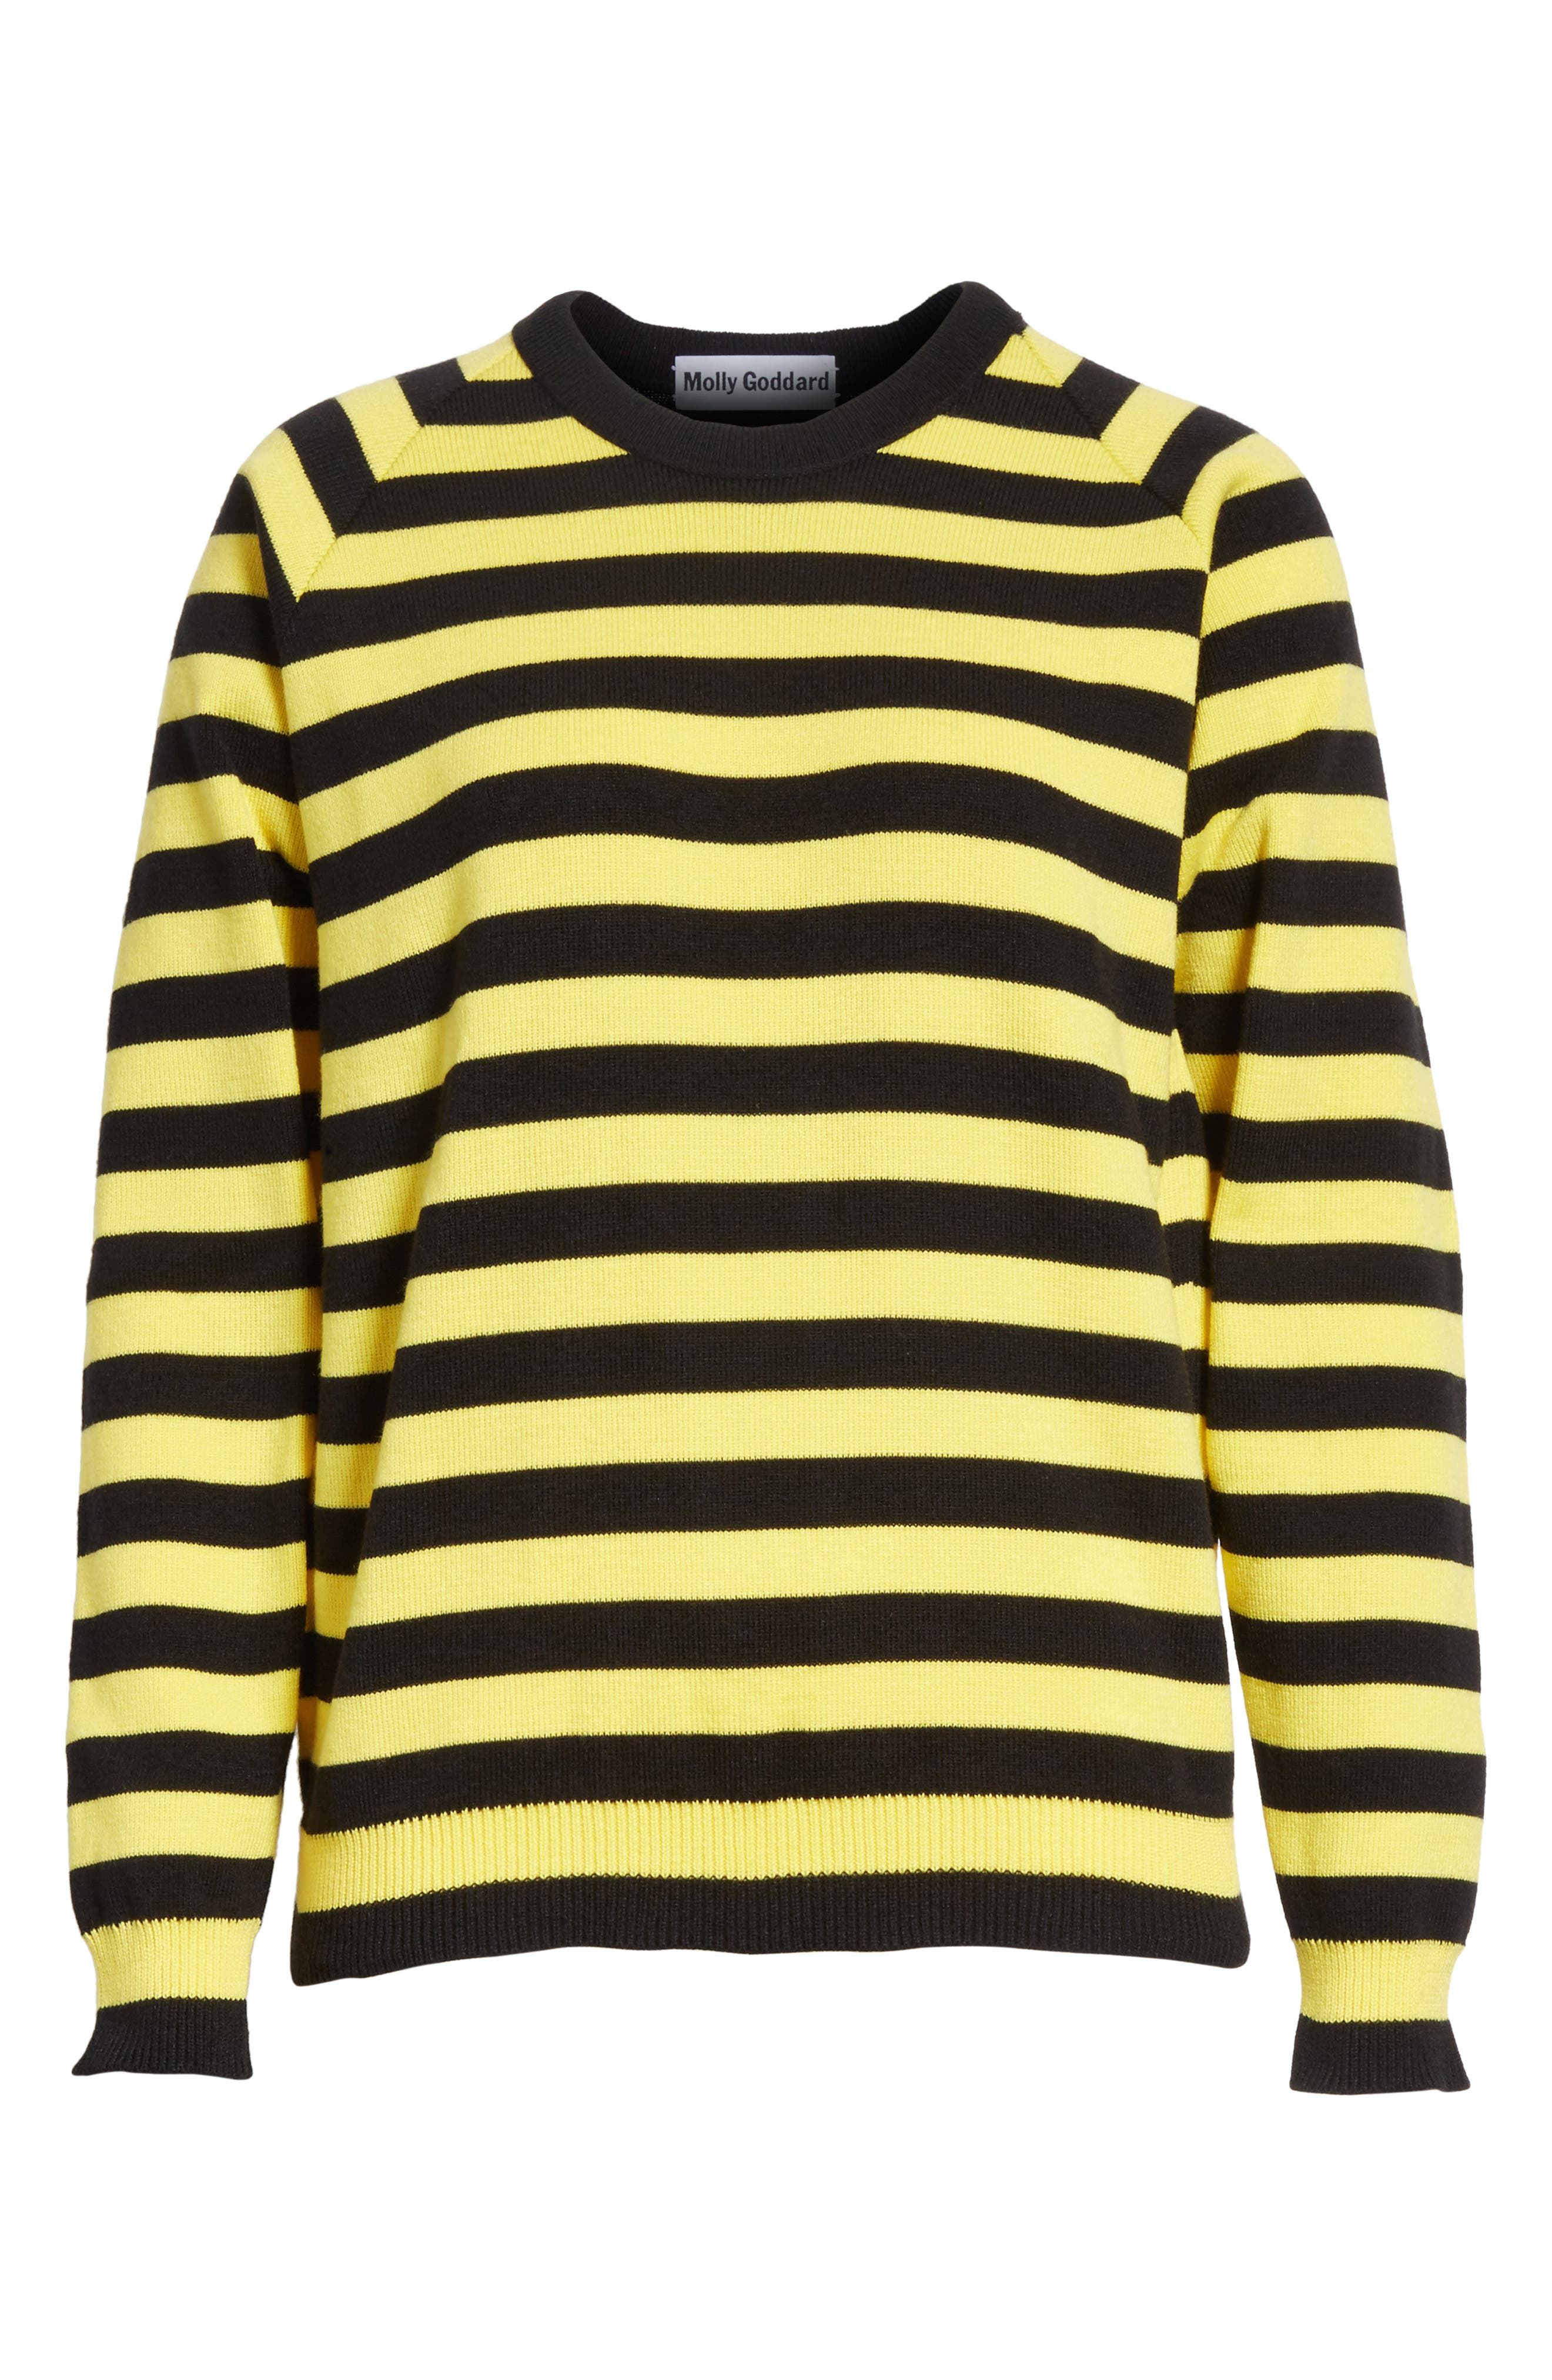 Bumblebee Stripe Sweater,                             Alternate thumbnail 6, color,                             750